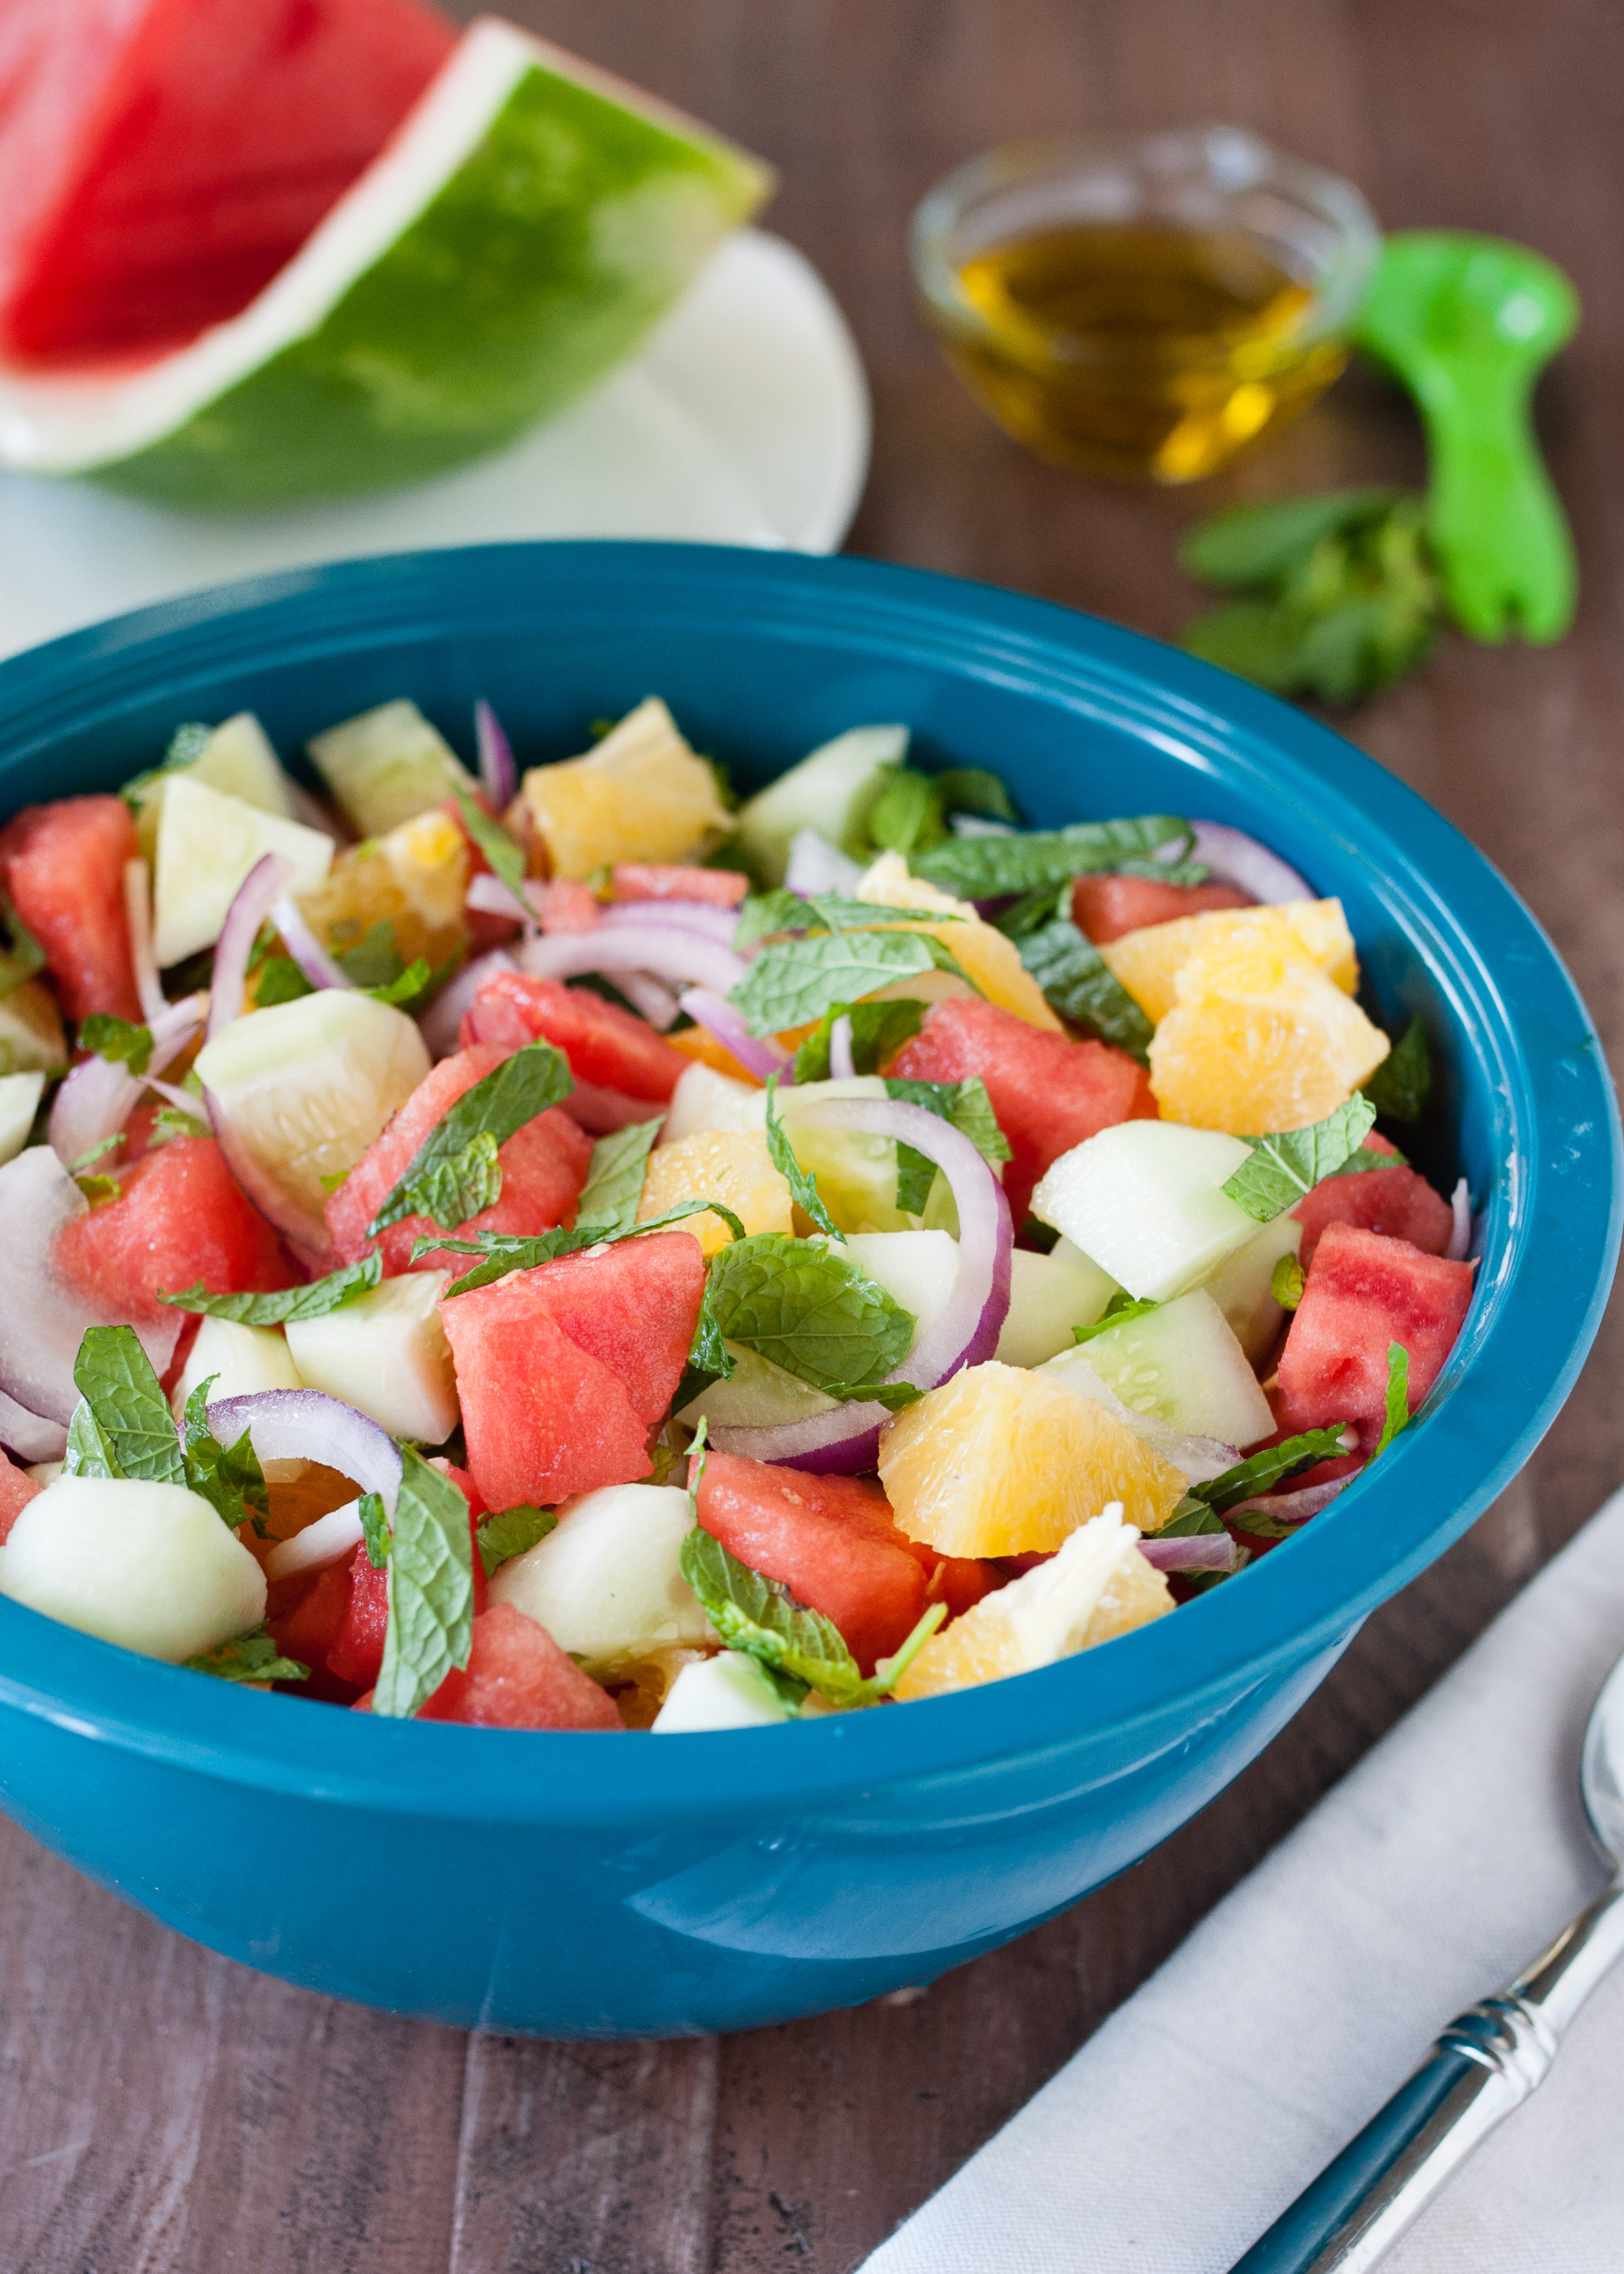 Watermelon Cucumber Salad| www.nutritiouseats.com